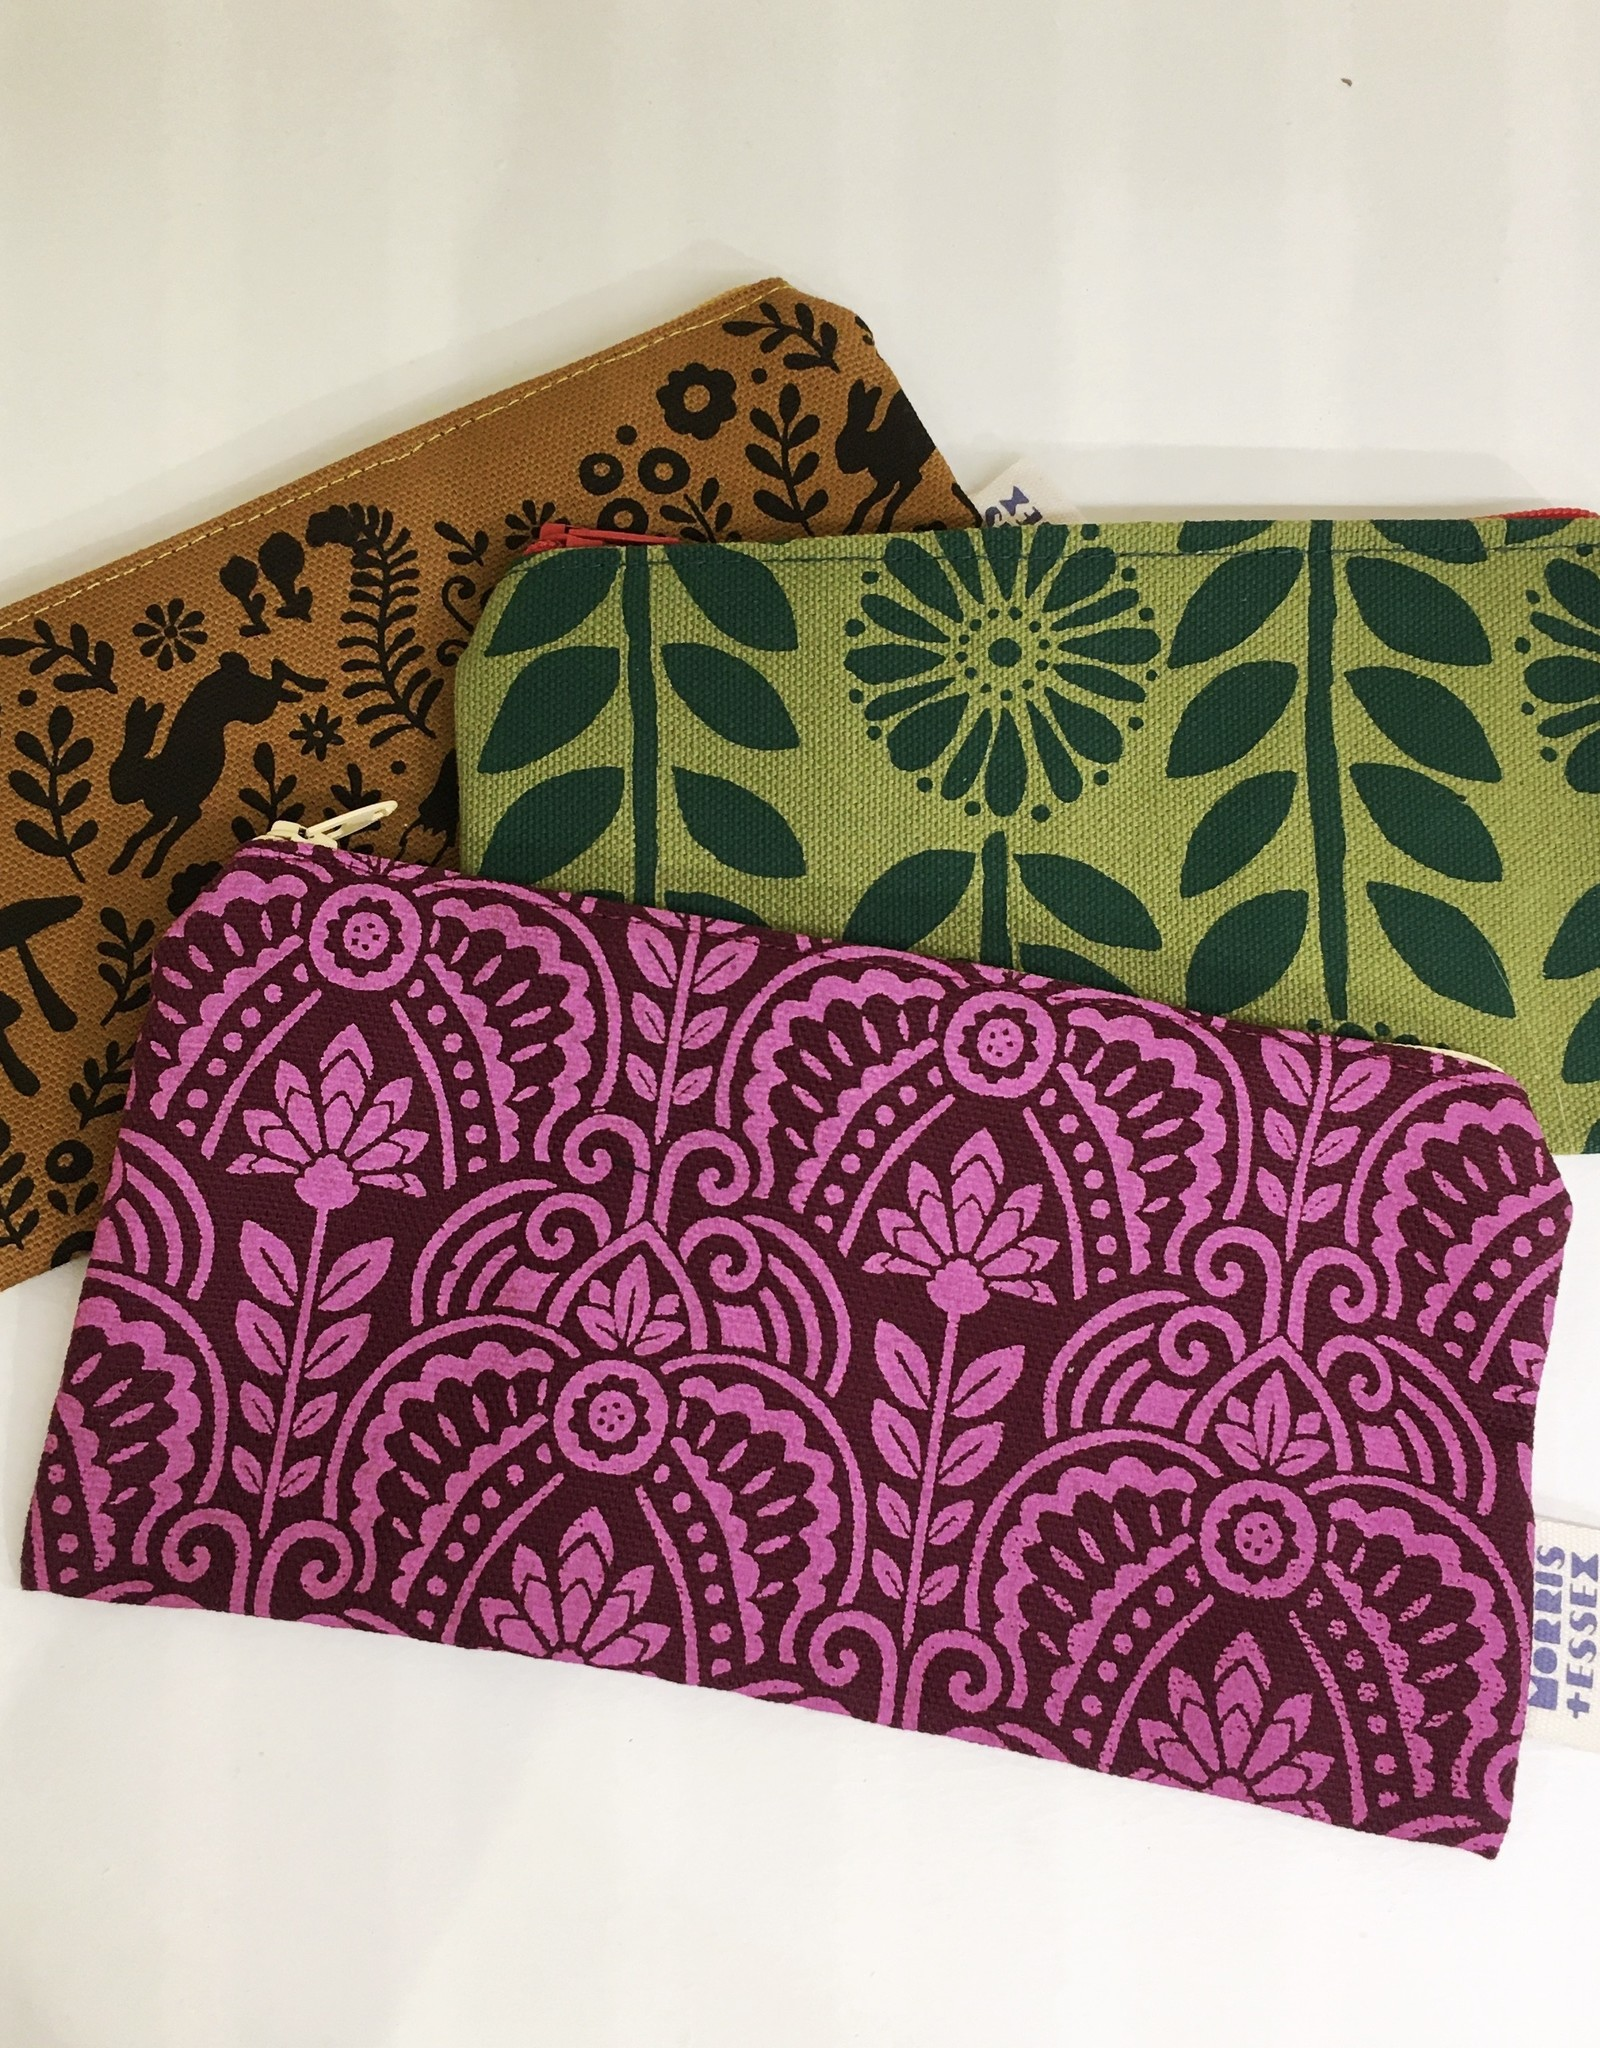 Morris & Essex Hand Printed Organic Cotton Zipper Pouch